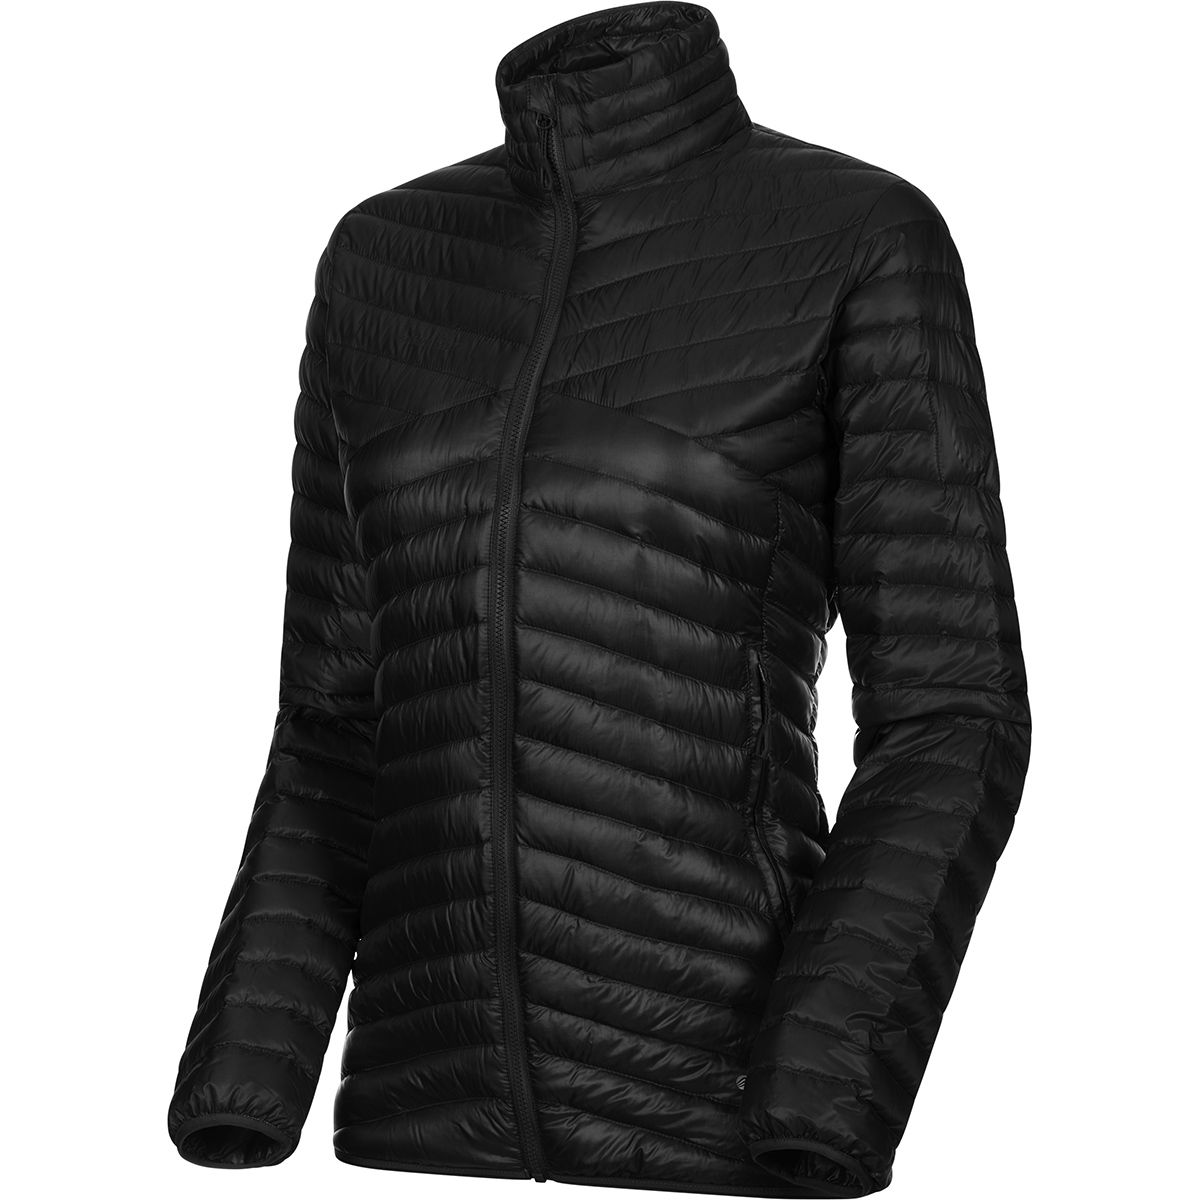 Mammut Damen Broad Peak Light IN Jacke (Größe L, Schwarz) | Isolationsjacken > Damen